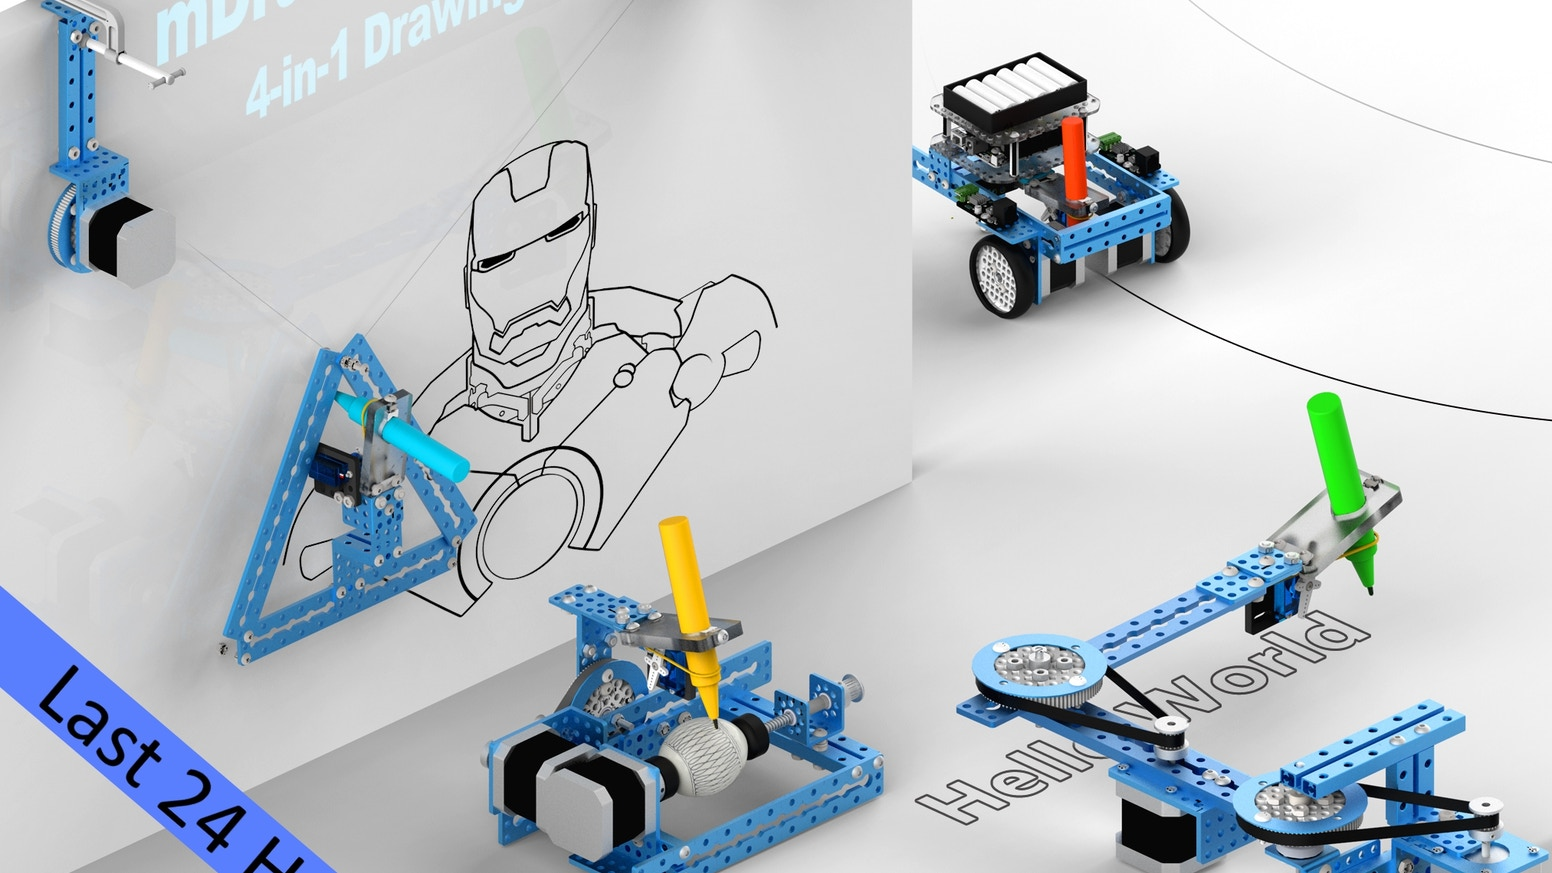 mDrawBot is a 4-in-1 drawing robot kit, it can be assembled into 4 different drawing robots: mScara, mCar, mSpider and mEggBot.